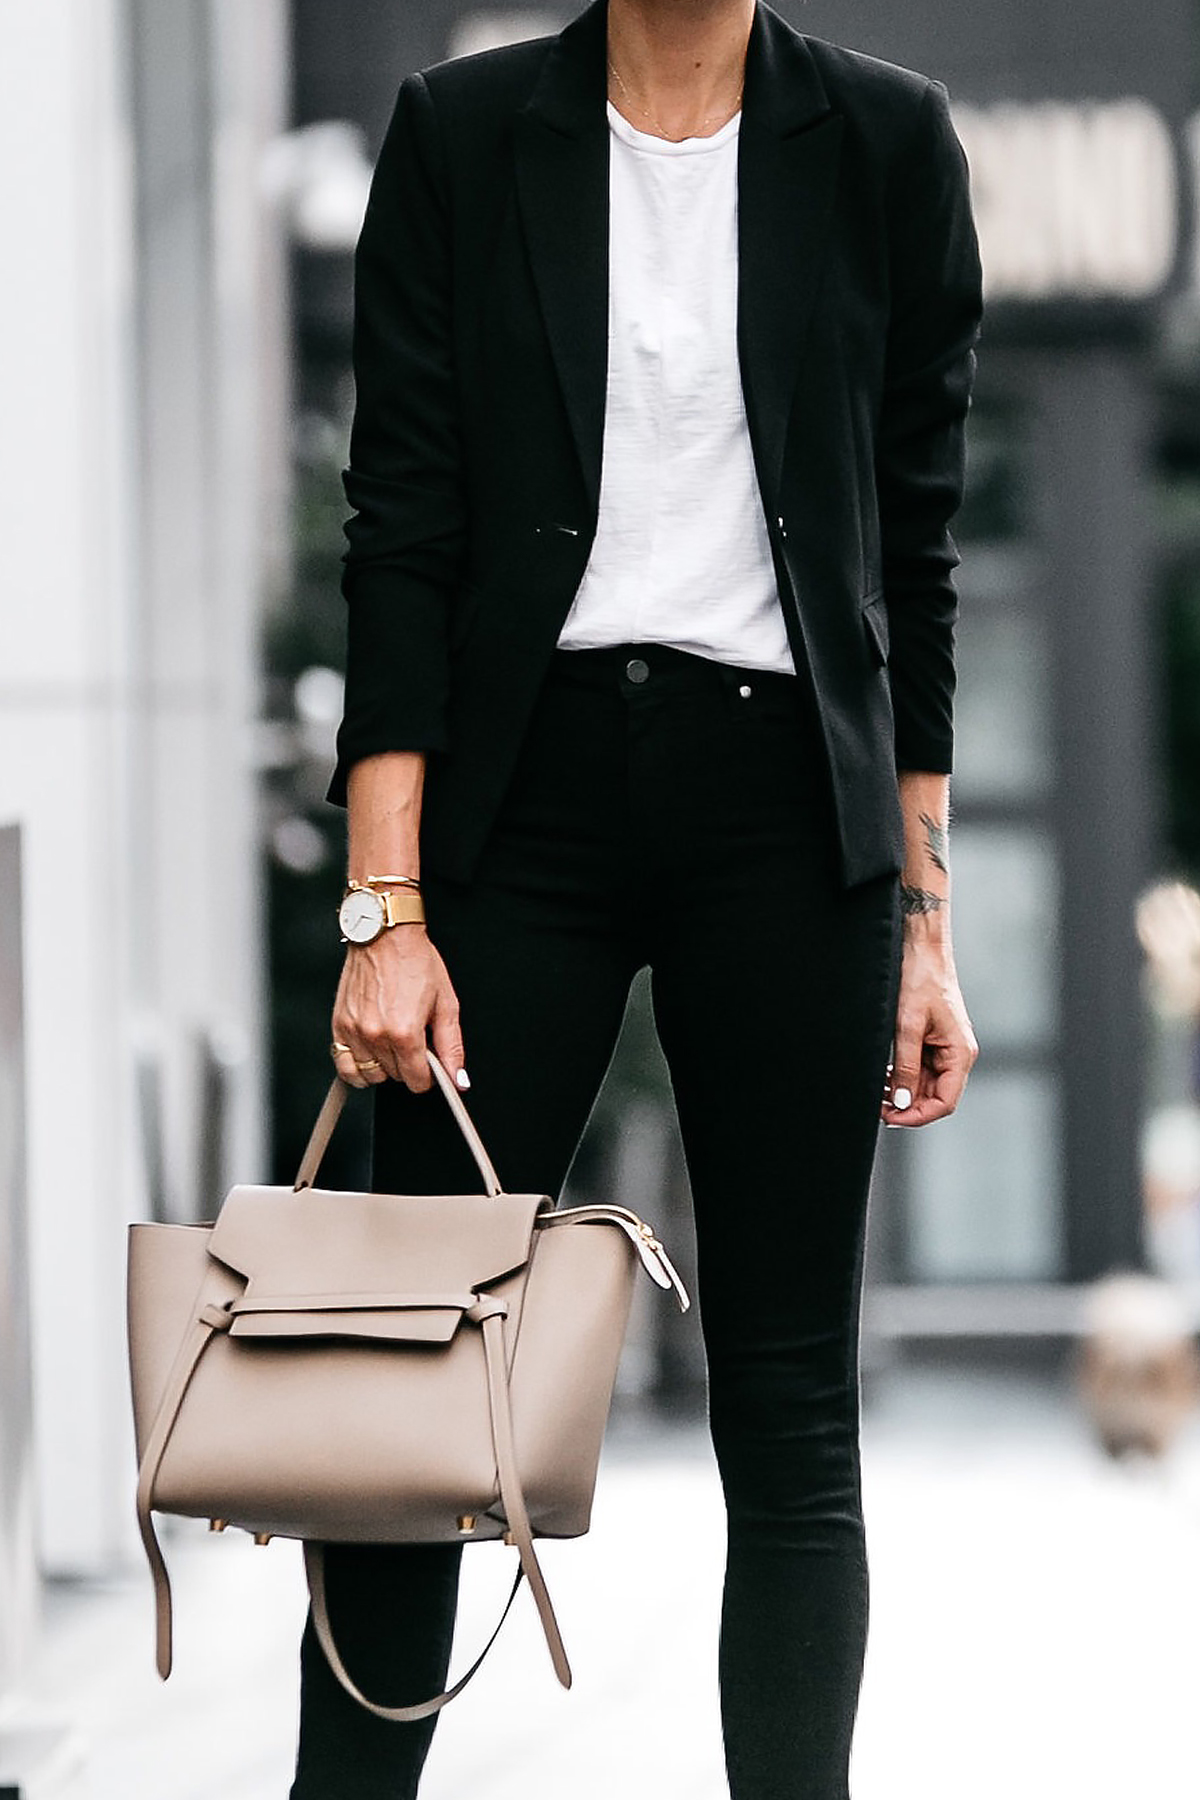 Nordstrom Black Blazer White Tshirt Black Raw Hem Jeans Outfit Celine Belt Bag Fashion Jackson Dallas Blogger Fashion Blogger Street Style